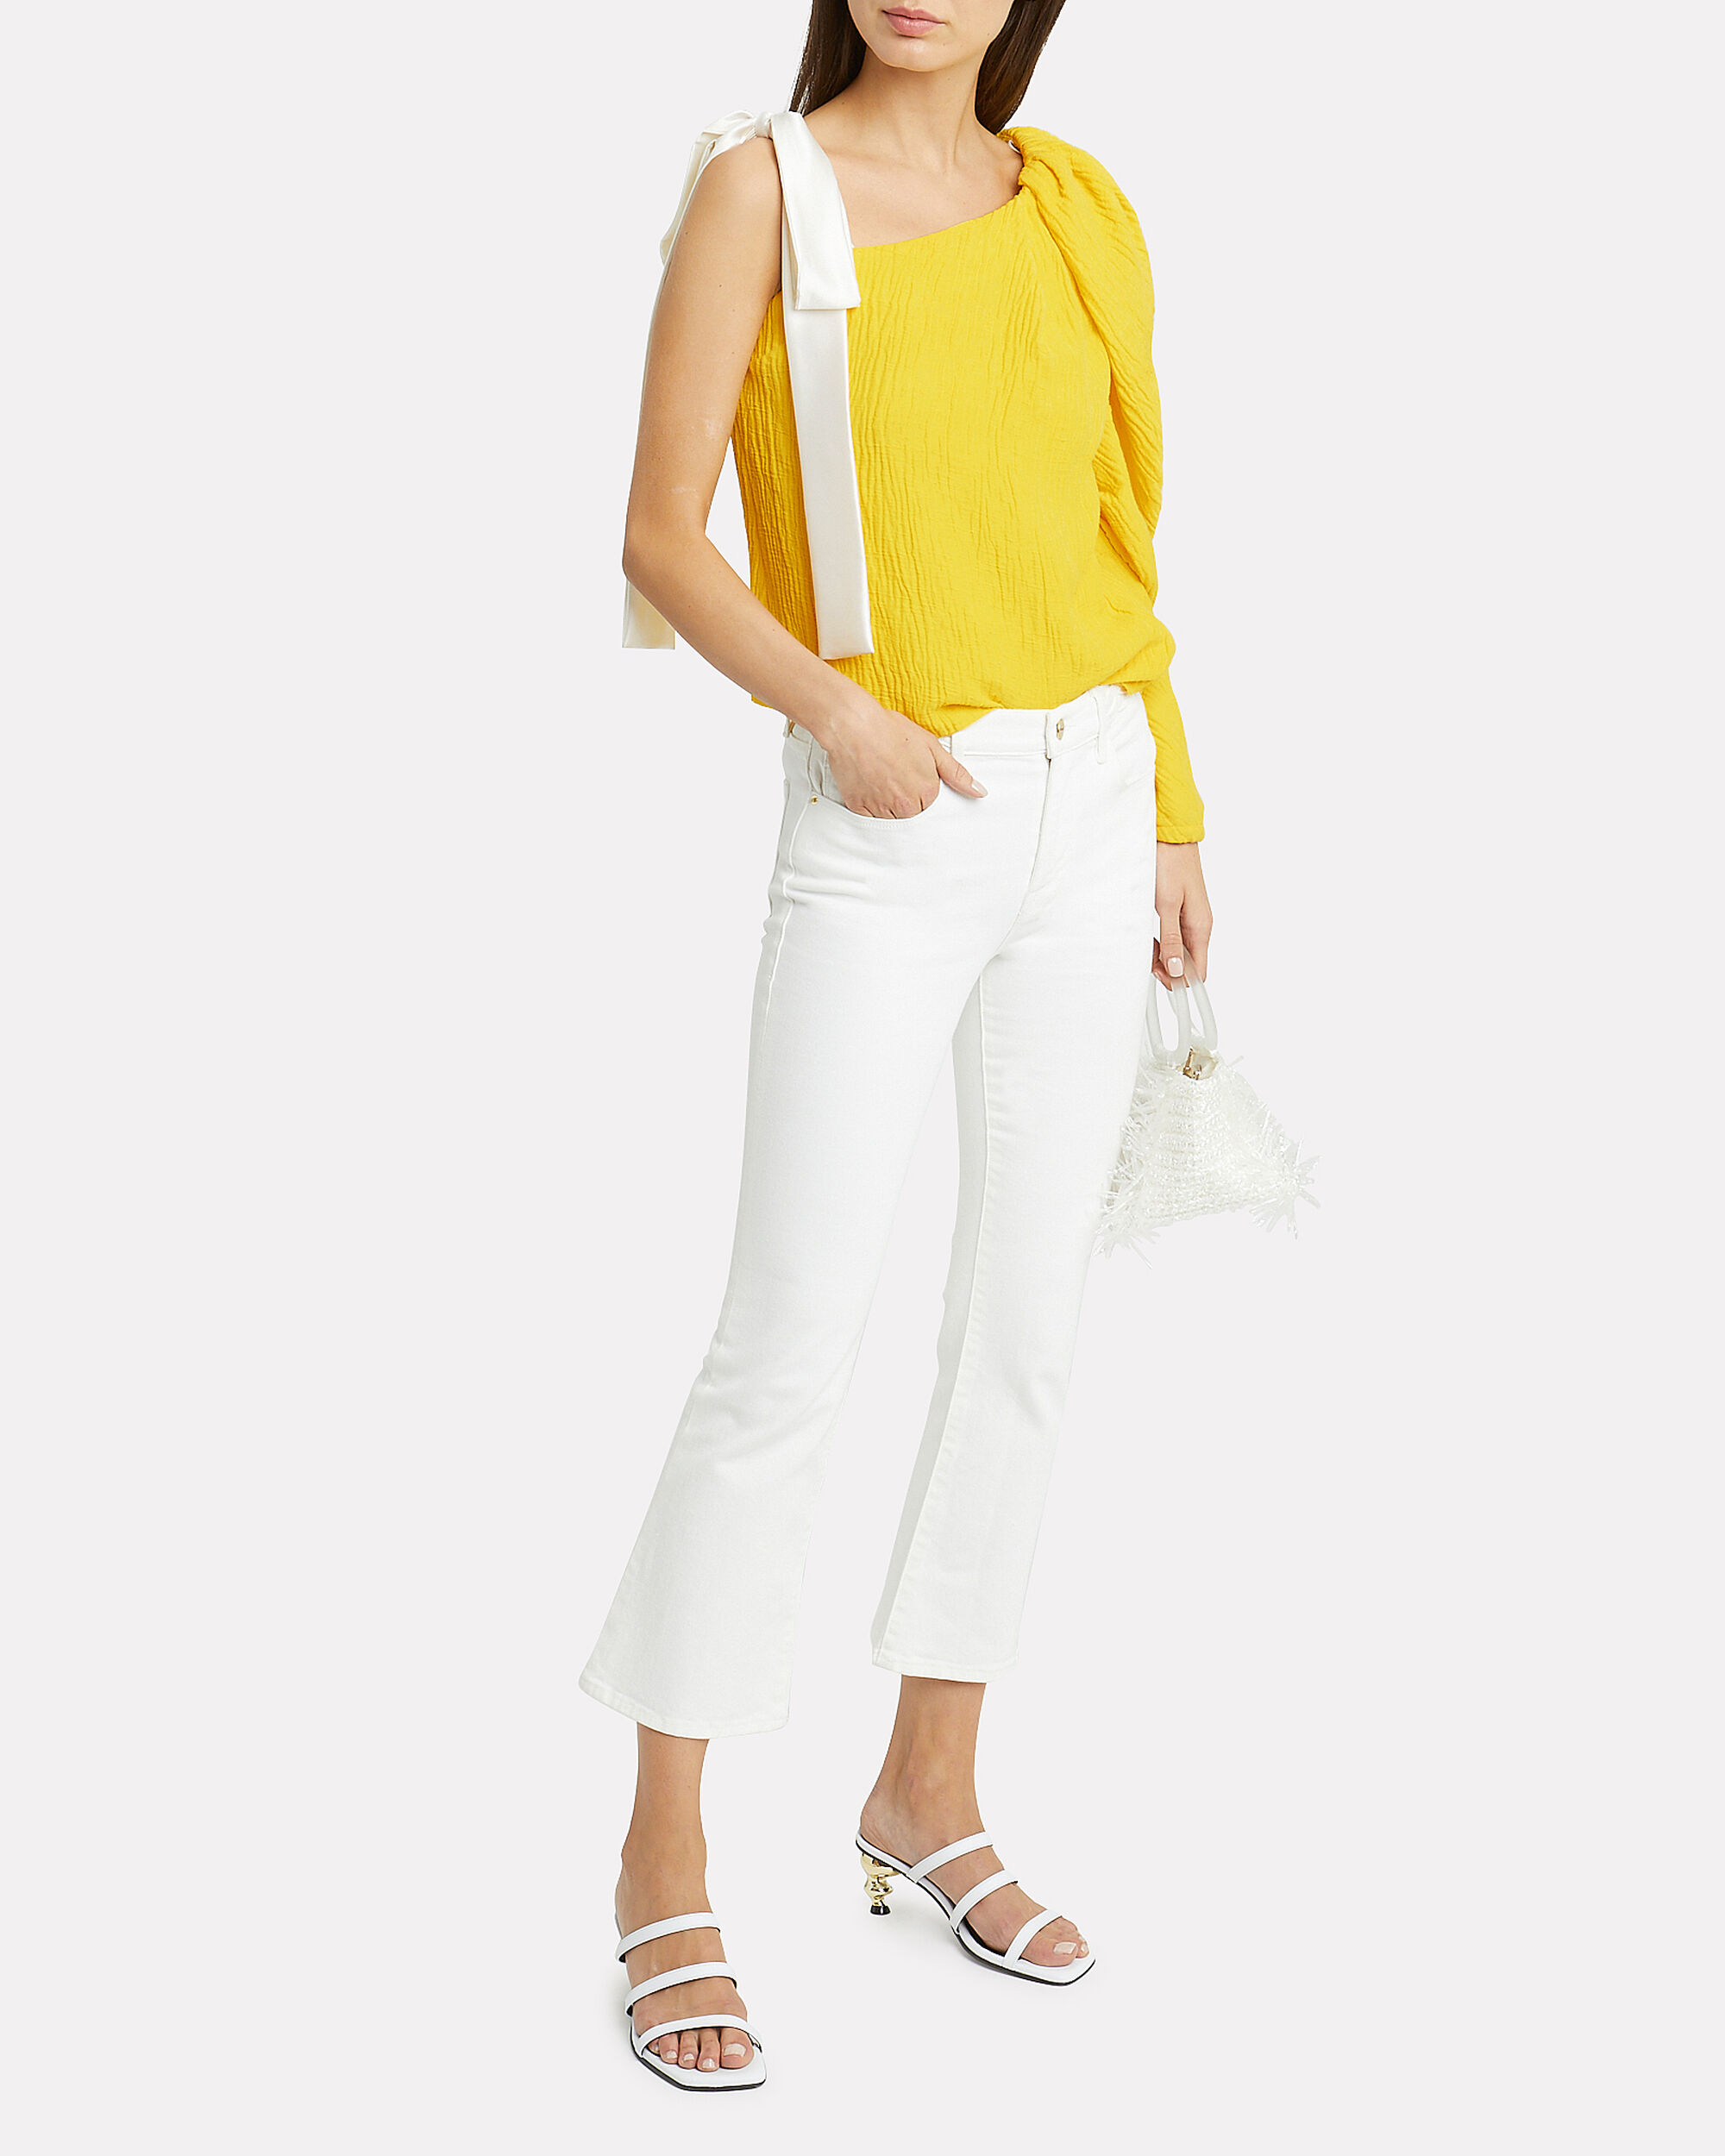 Cooper One Shoulder Puff Sleeve Top, YELLOW/WHITE, hi-res